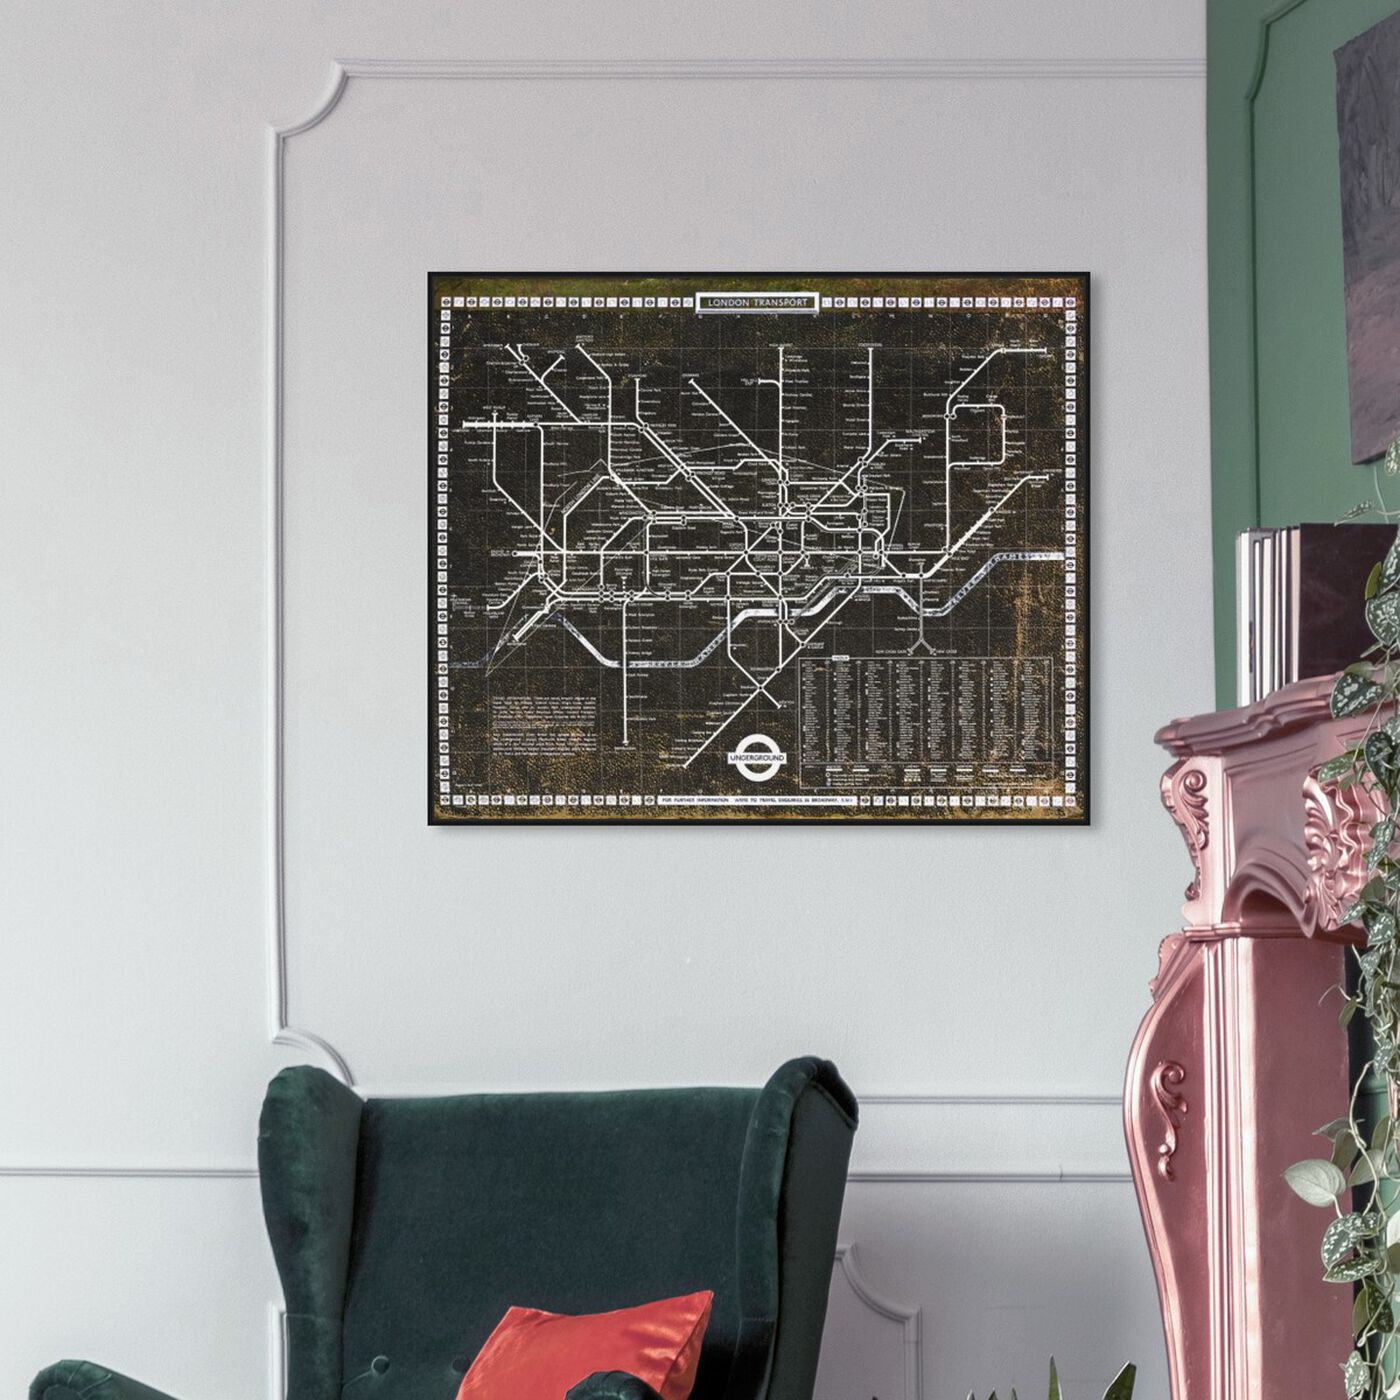 Hanging view of London Tube 1972 featuring maps and flags and european cities flags art.